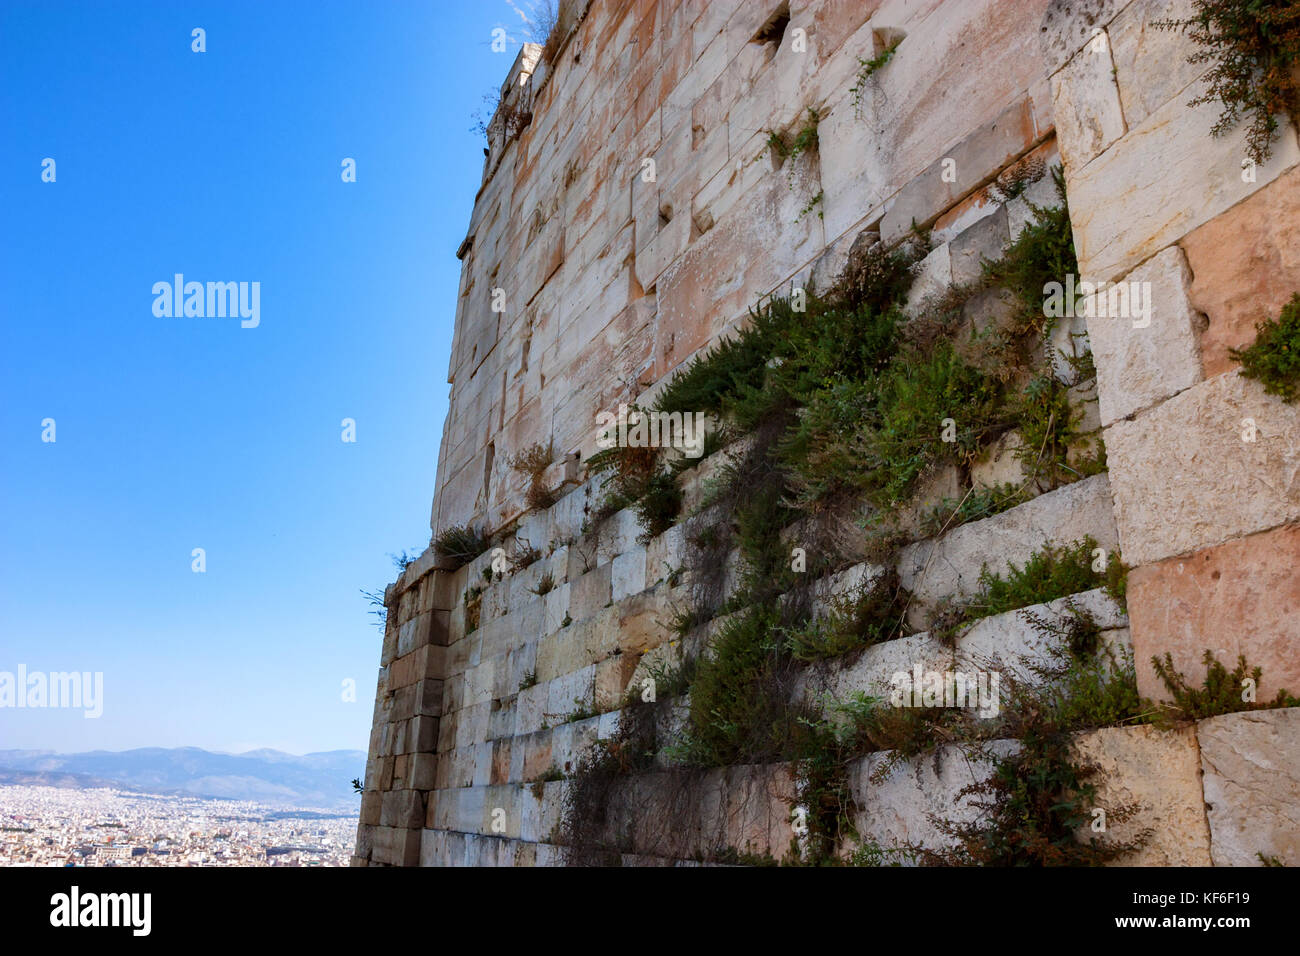 Wall of the Acropolis wall in Greece - Stock Image